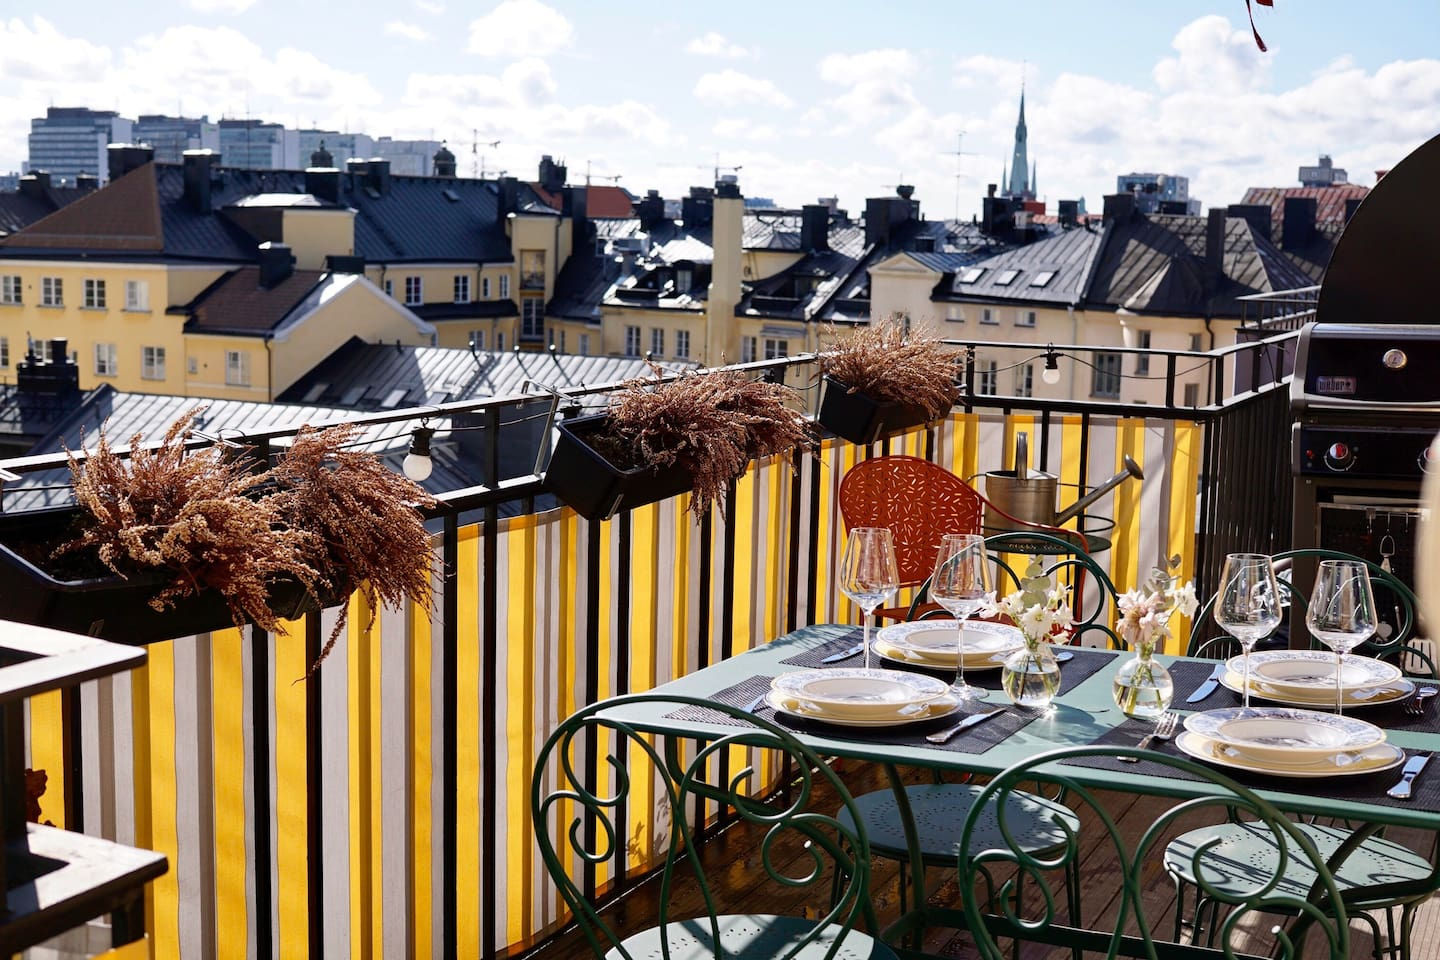 Our terrace where we enjoy breakfasts and dinners in the summer time (new flowers have been planted since this pic)